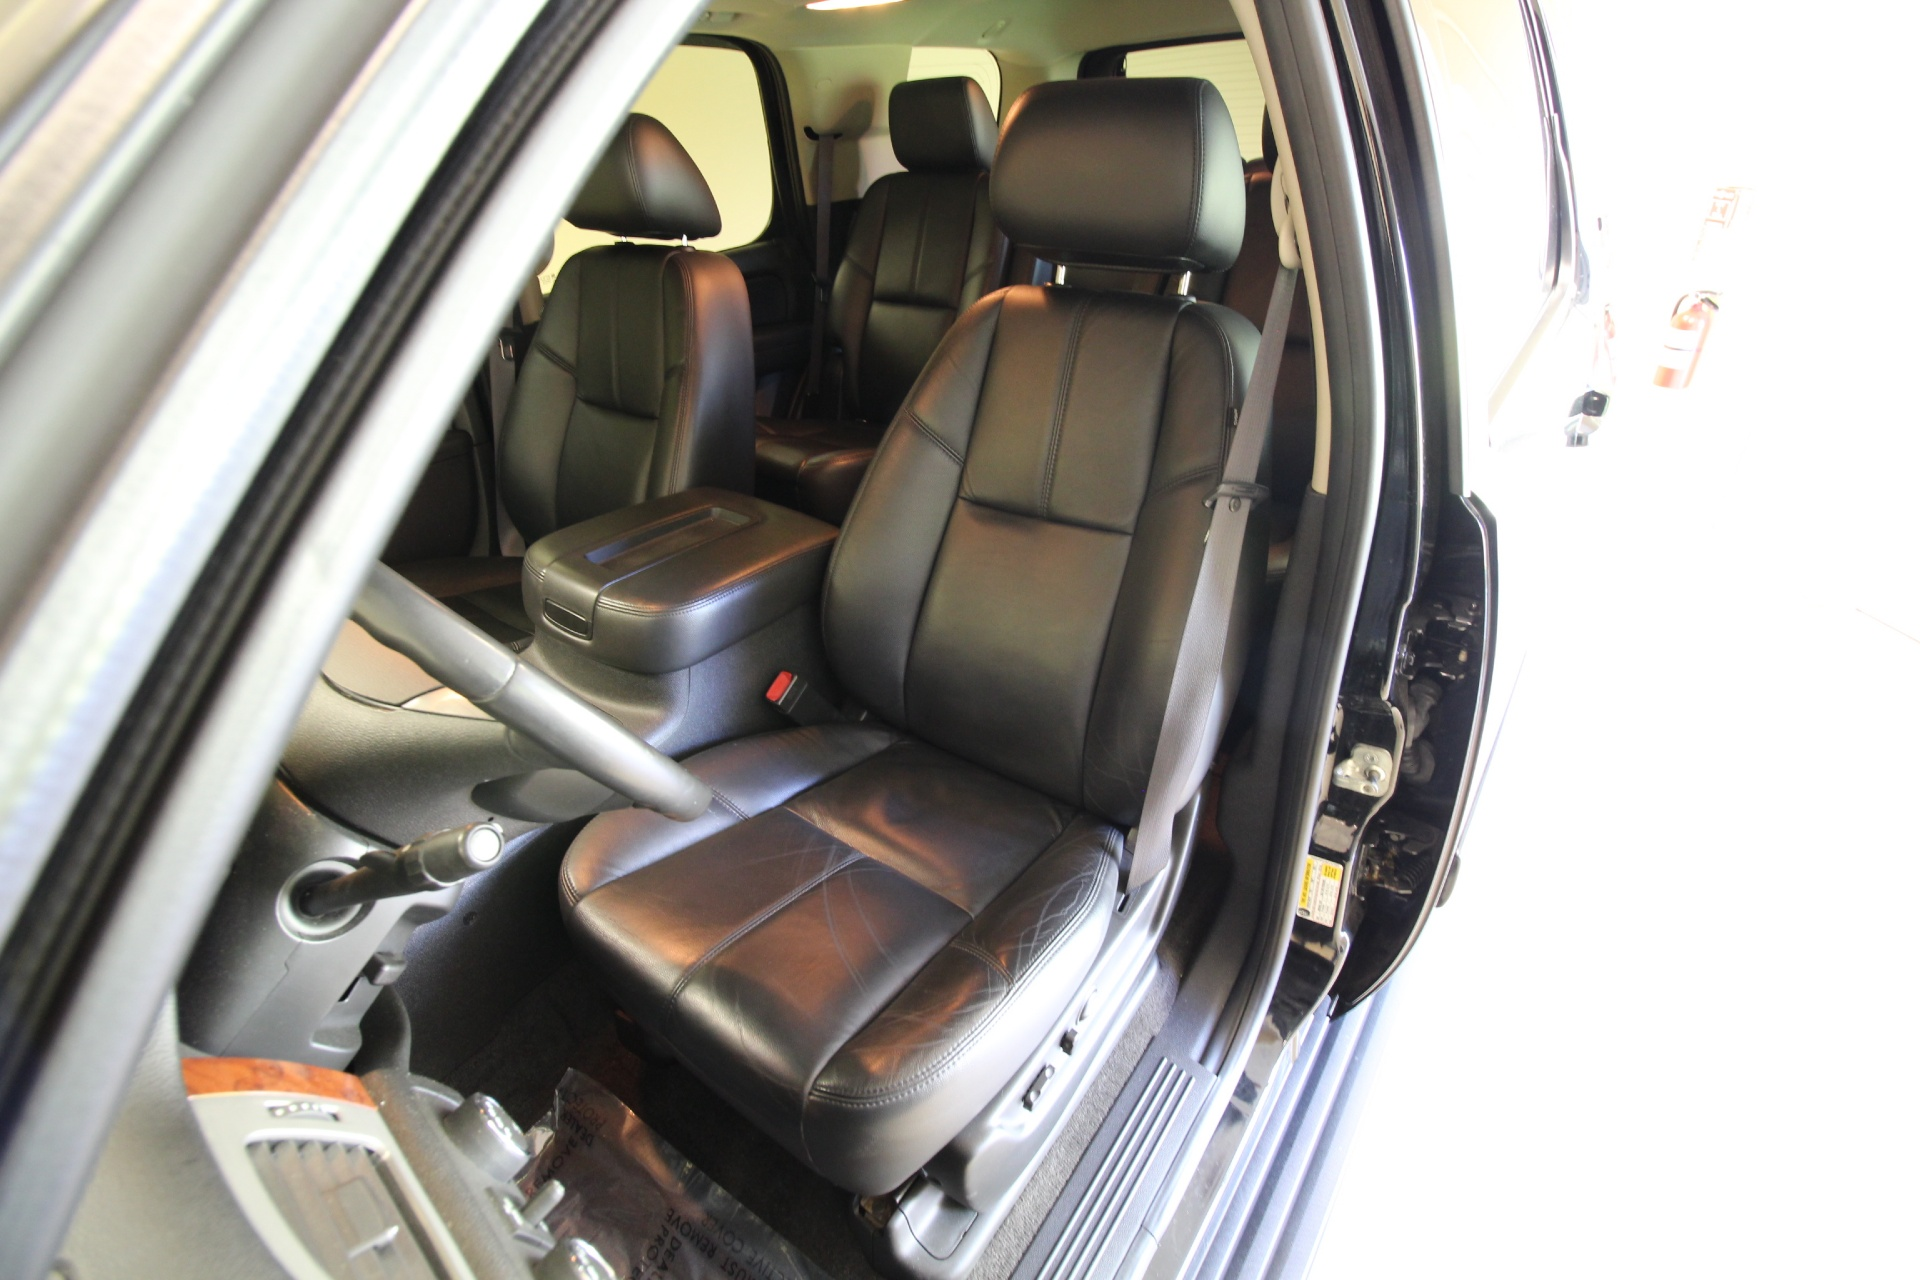 2011 Chevrolet Tahoe Lt Super Clean Loaded Leather Heated